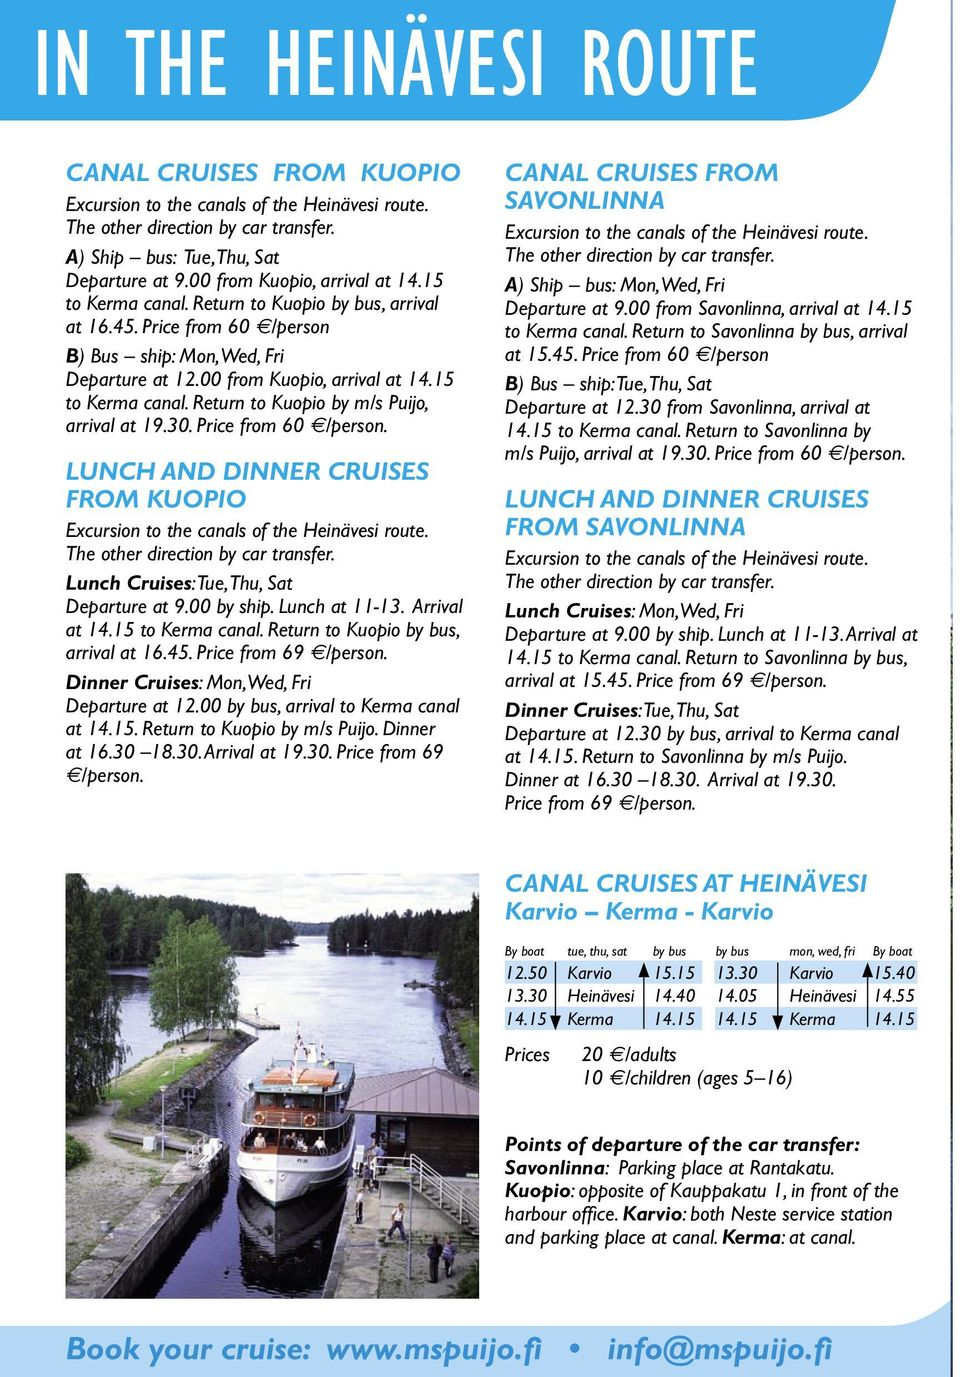 LUNCH AND DINNER CRUISES FROM KUOPIO Lunch Cruises: Tue, Thu, Sat Departure at 9.00 by ship. Lunch at 11-13. Arrival at 14.15 to Kerma canal. Return to Kuopio by bus, arrival at 16.45.